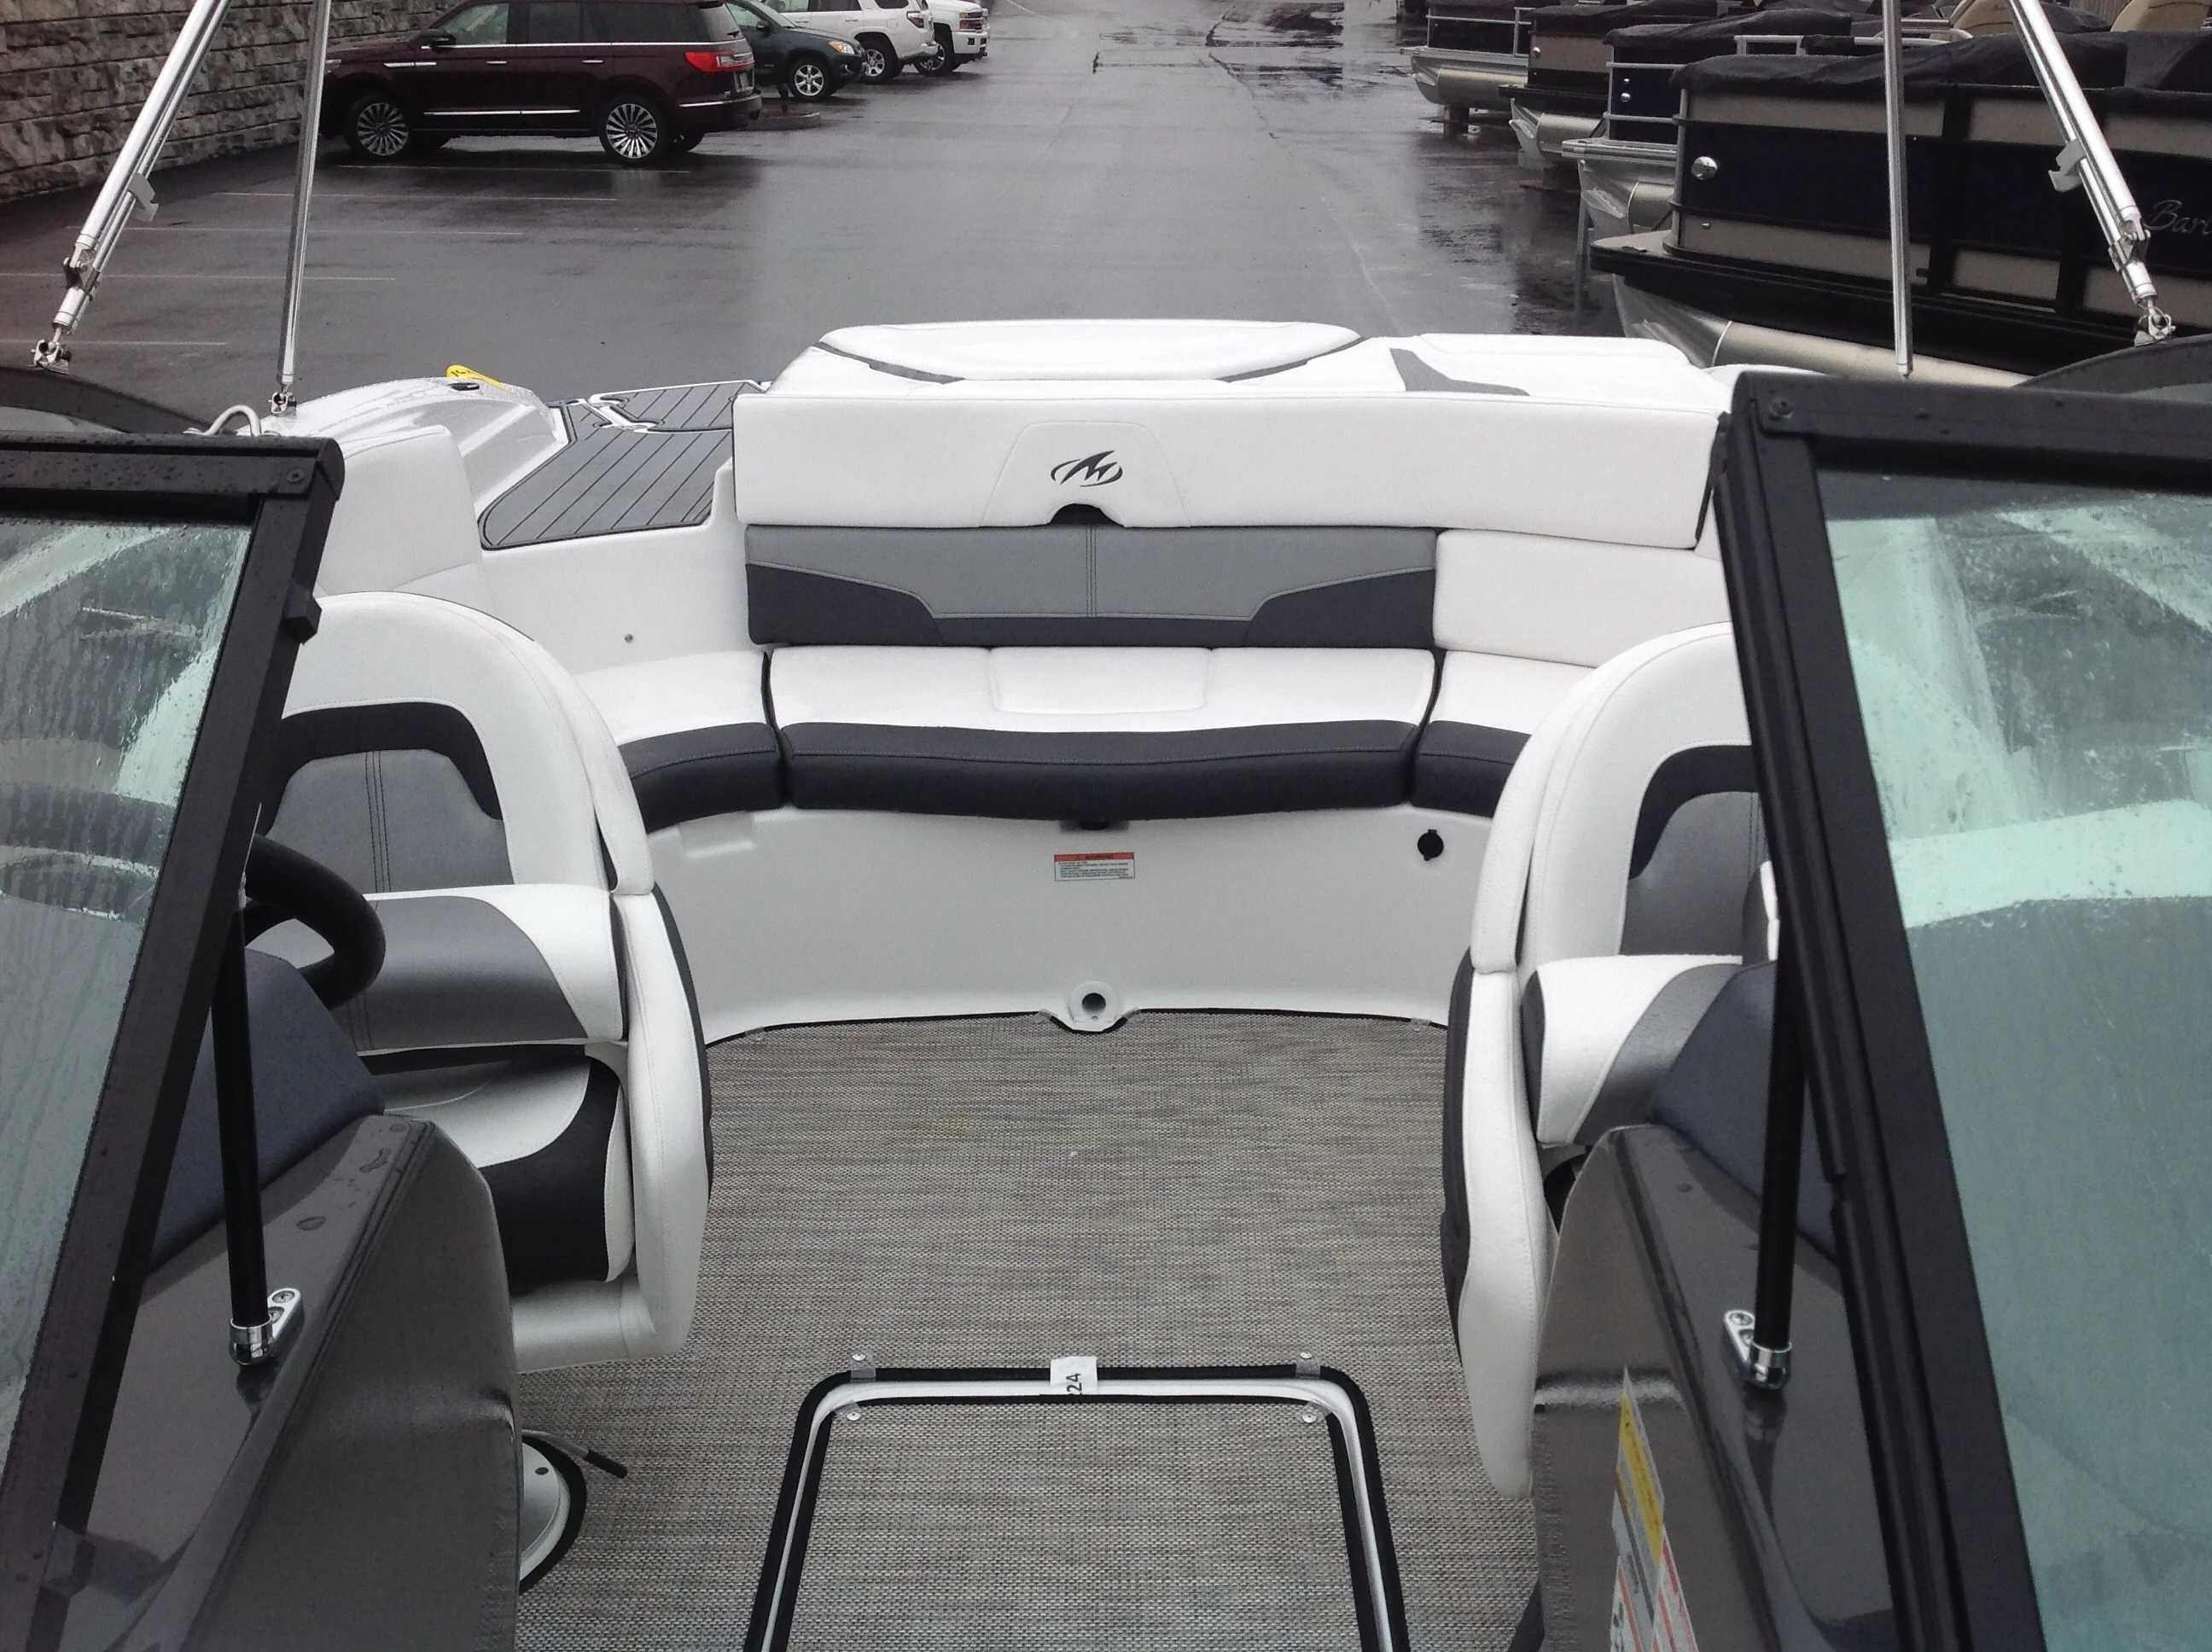 2021 Monterey boat for sale, model of the boat is 224FS & Image # 6 of 11